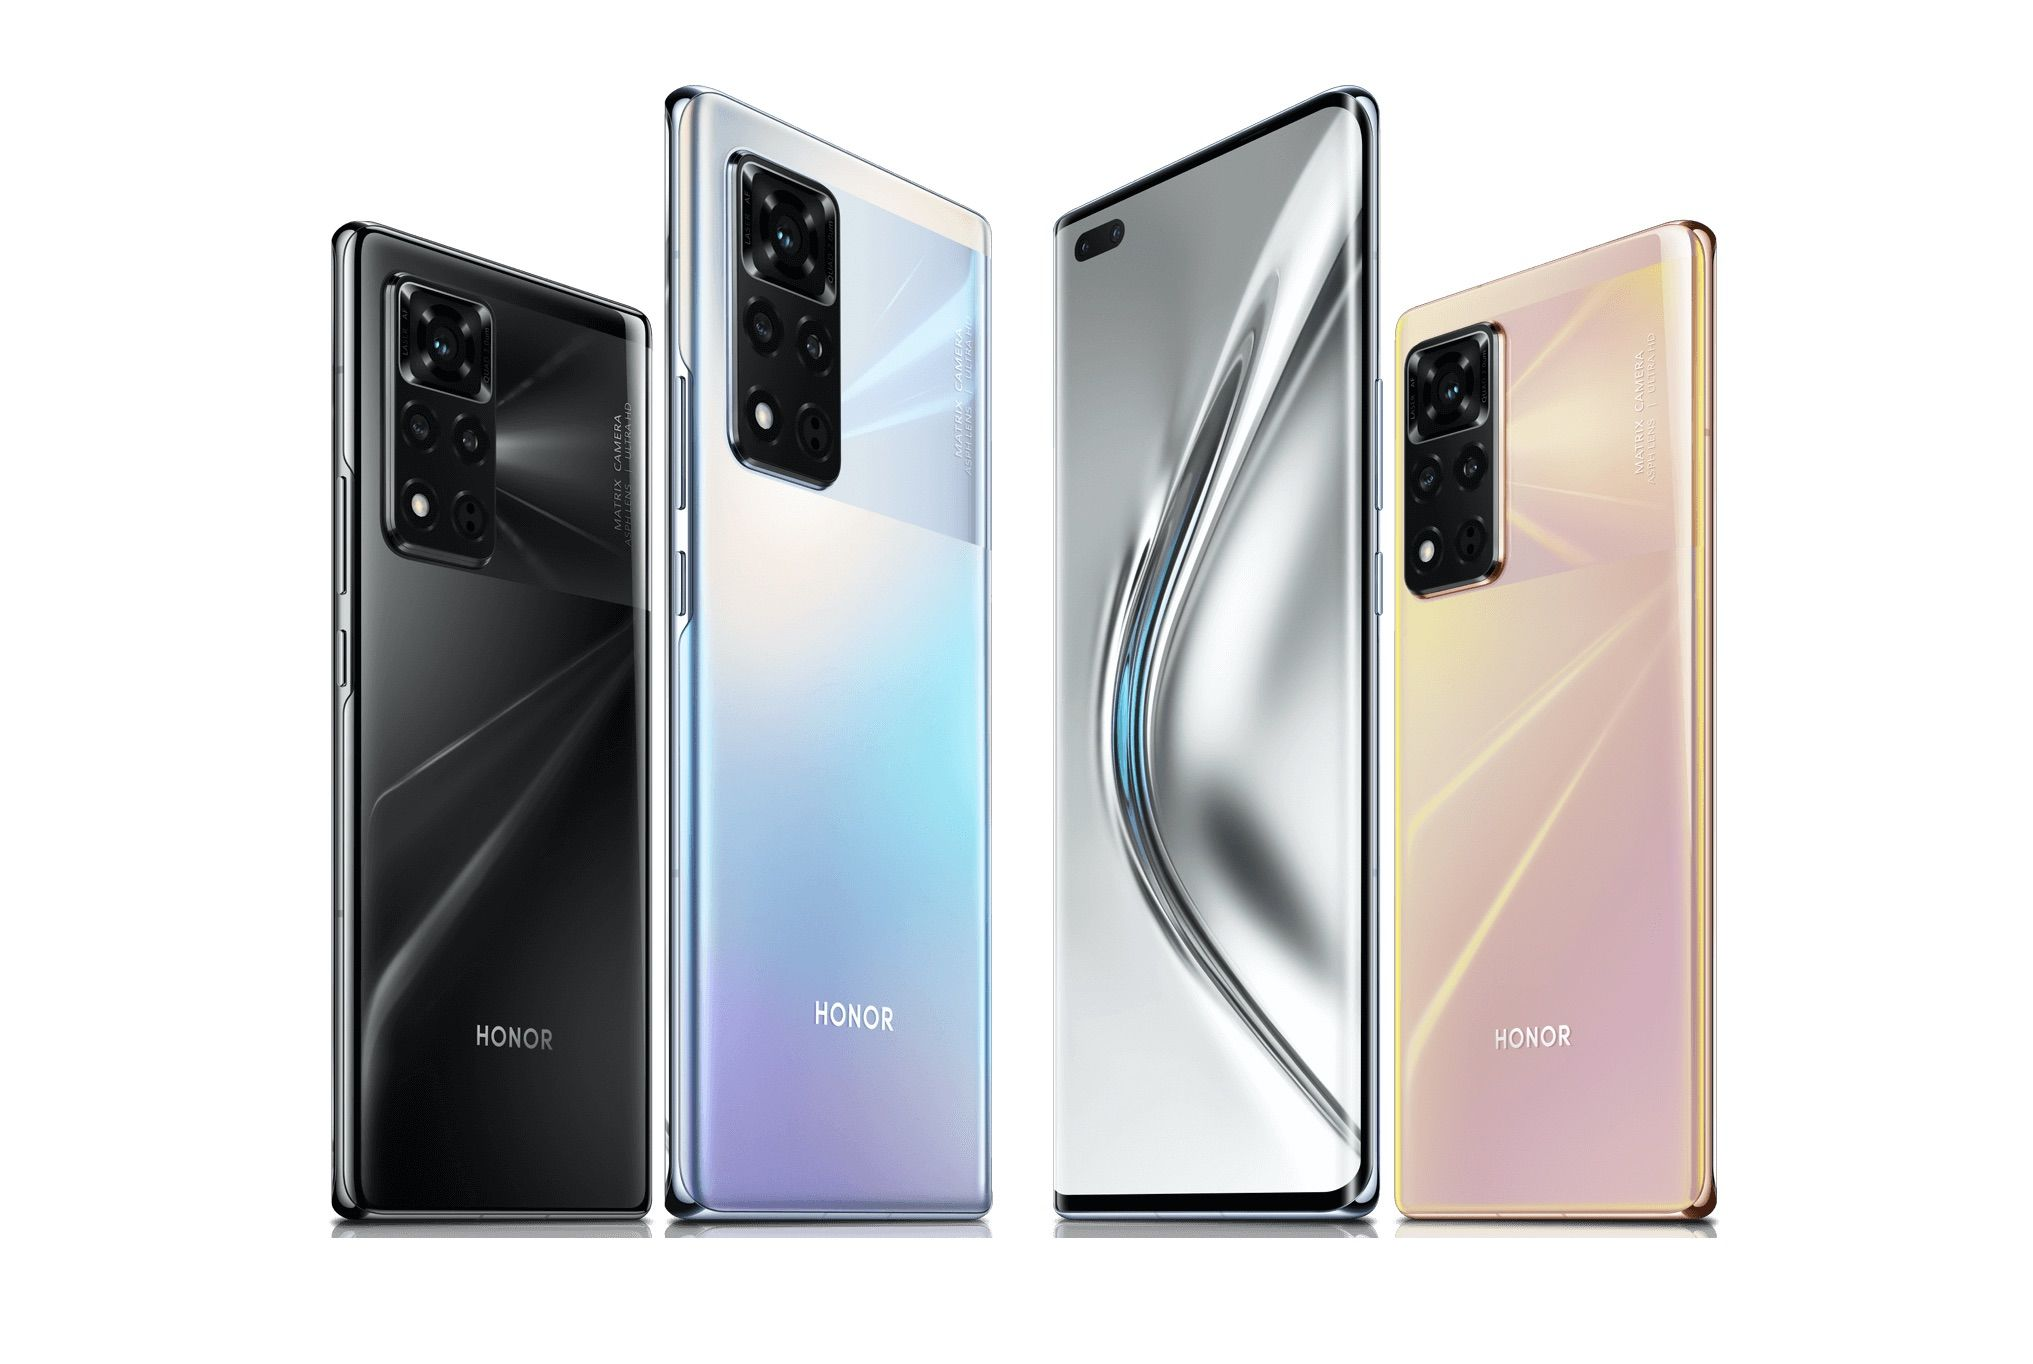 The View40 is Honor's first phone after splitting from Huawei